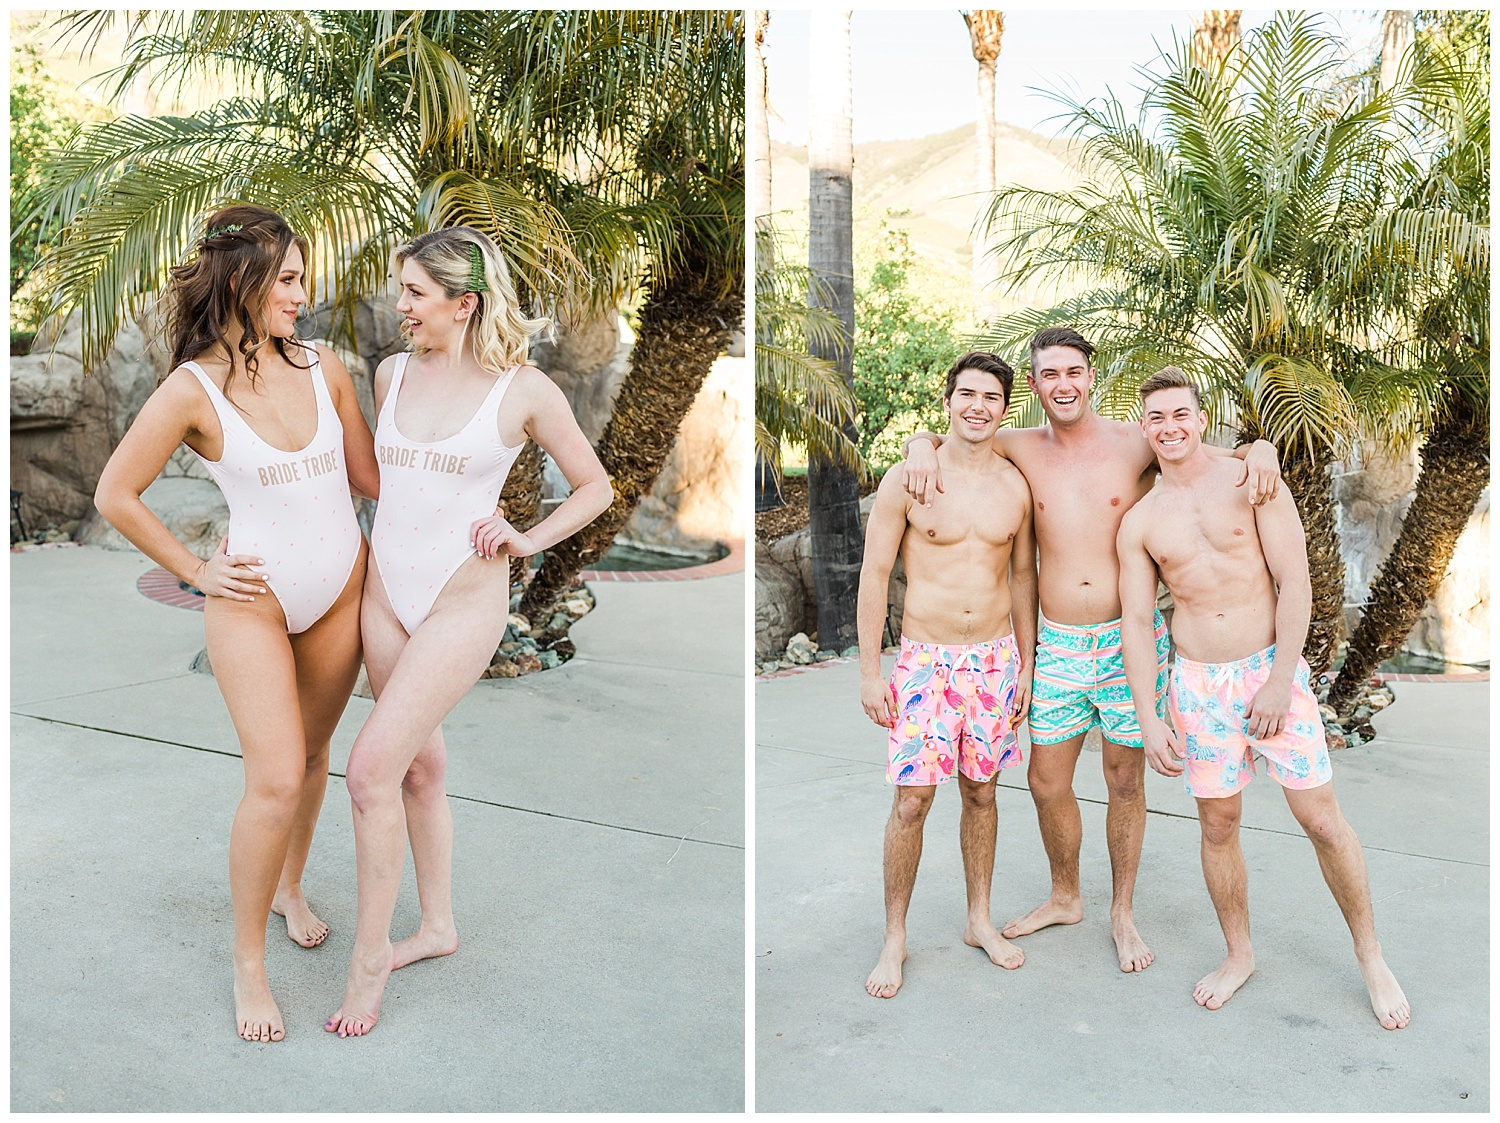 Bride-tribe-one-piece-swimsuits-Mod-Thread-Higuera-styled-shoot.jpg